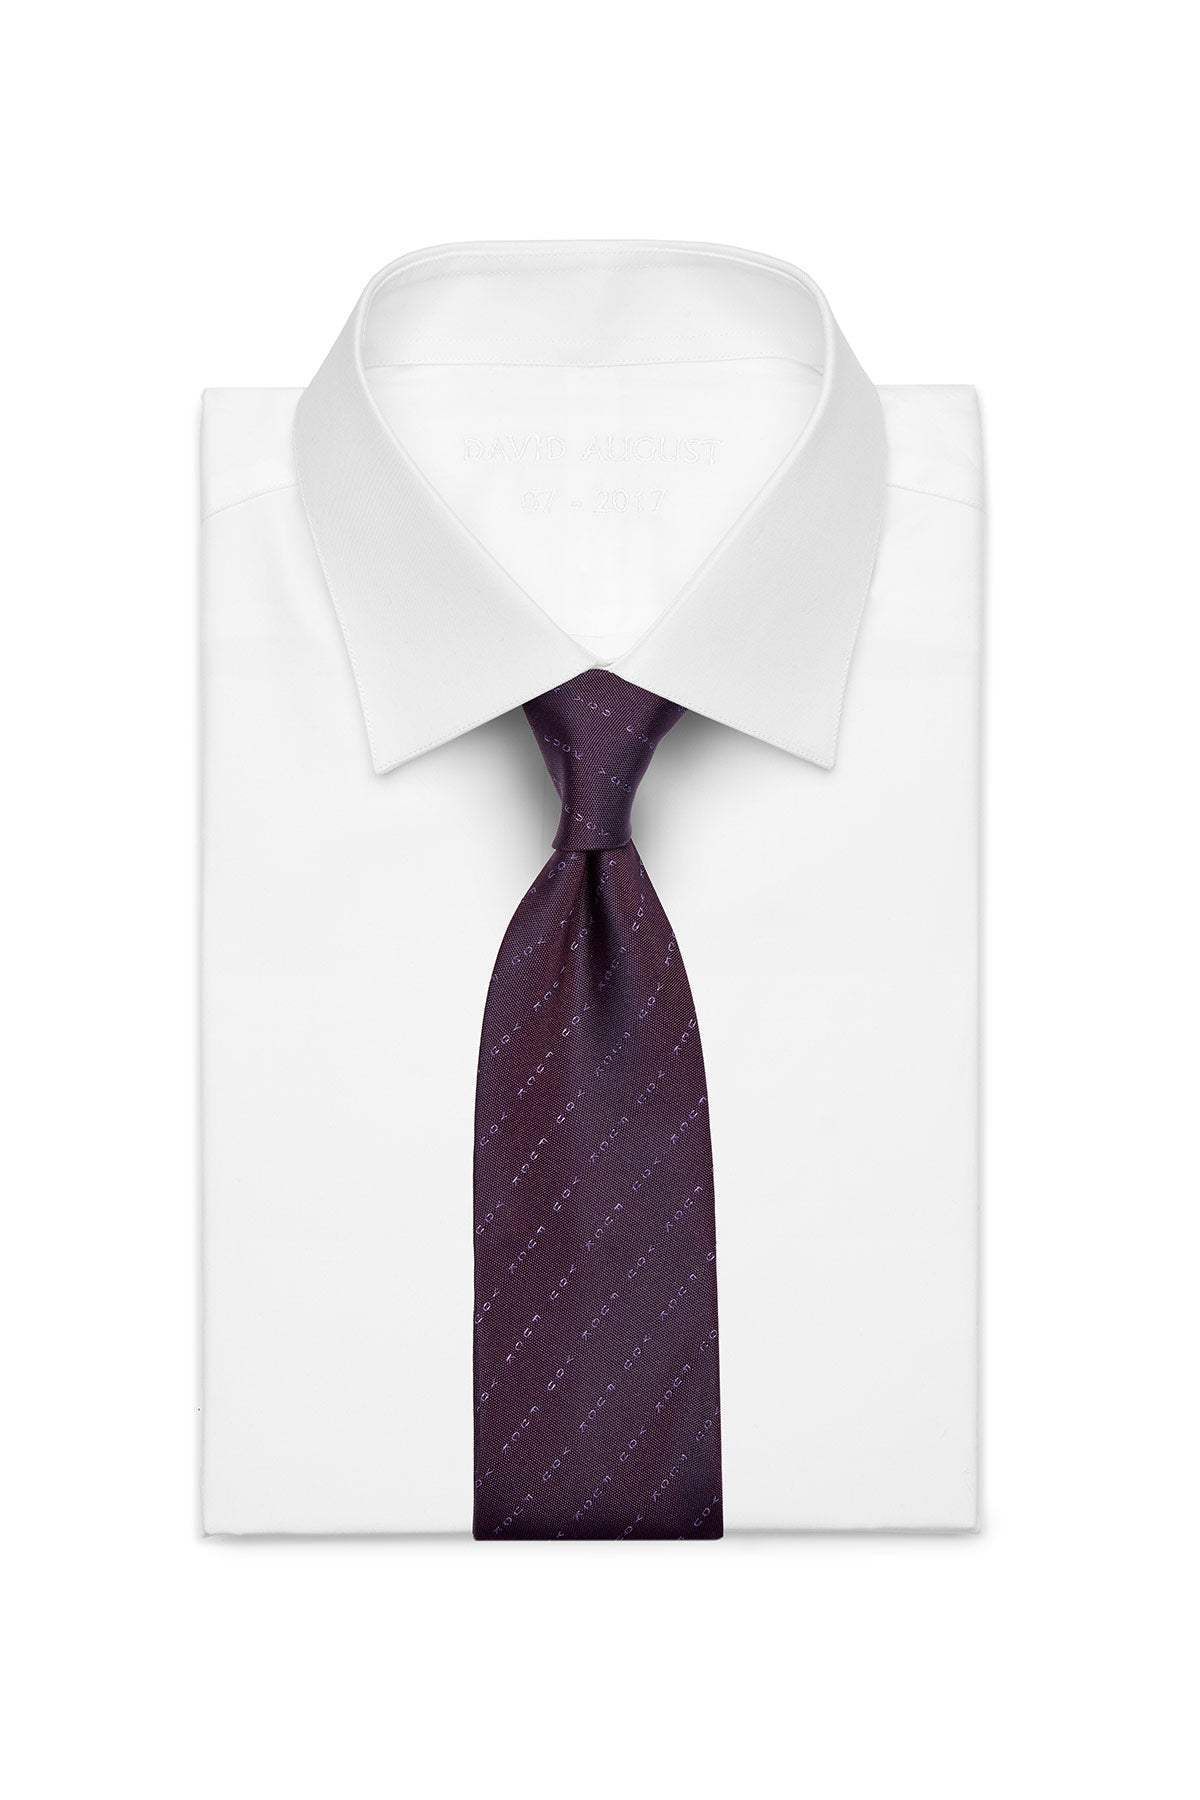 David August Silk Woven 'Eff You' Neck in Purple with Tonal Pinstripe